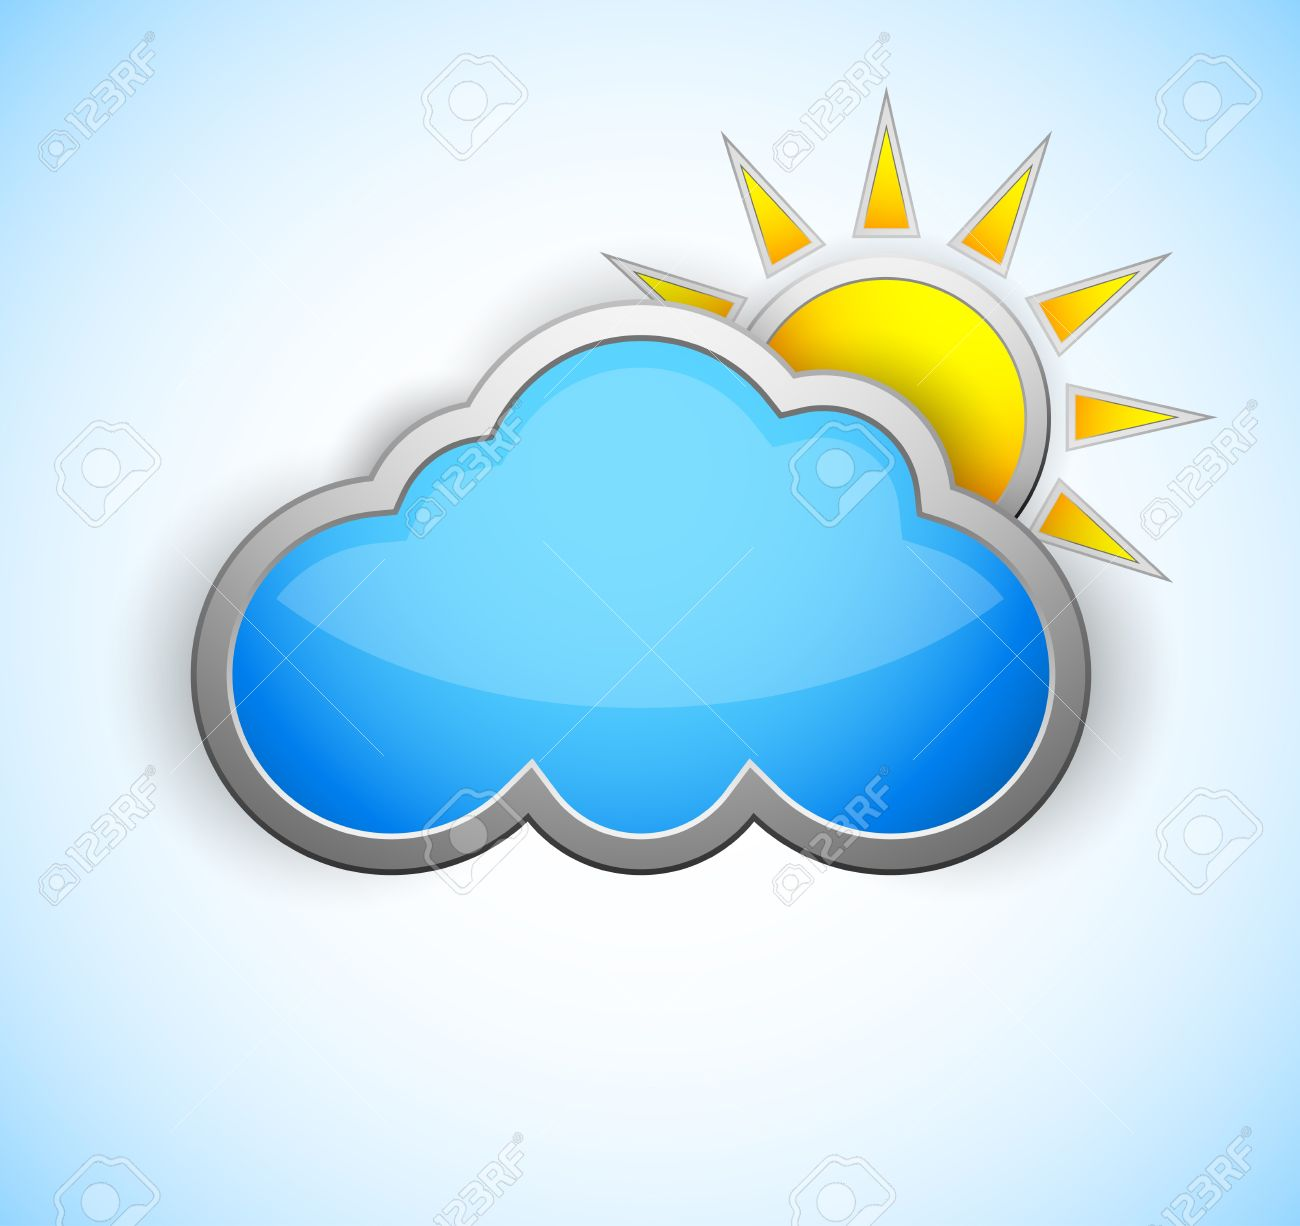 Sun and cloud weather icon  Shiny design Stock Vector - 15701811